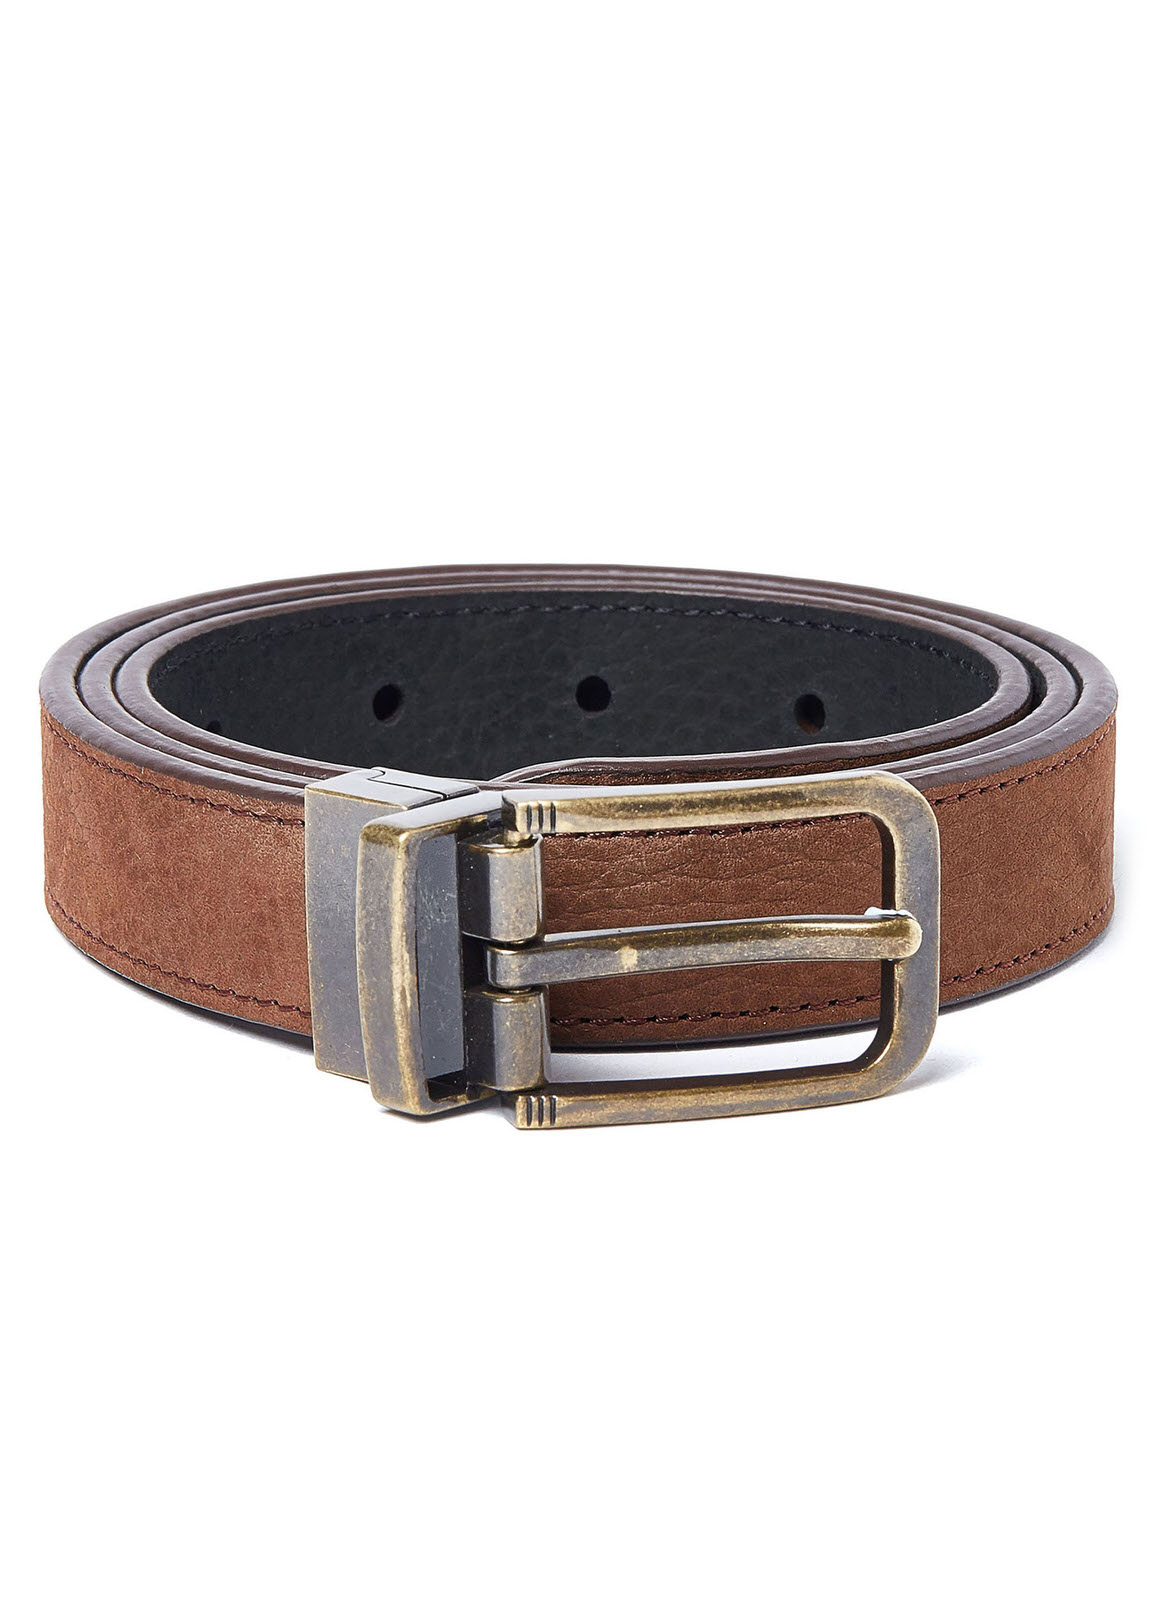 Foynes_Leather_Belt__Walnut_Image_1